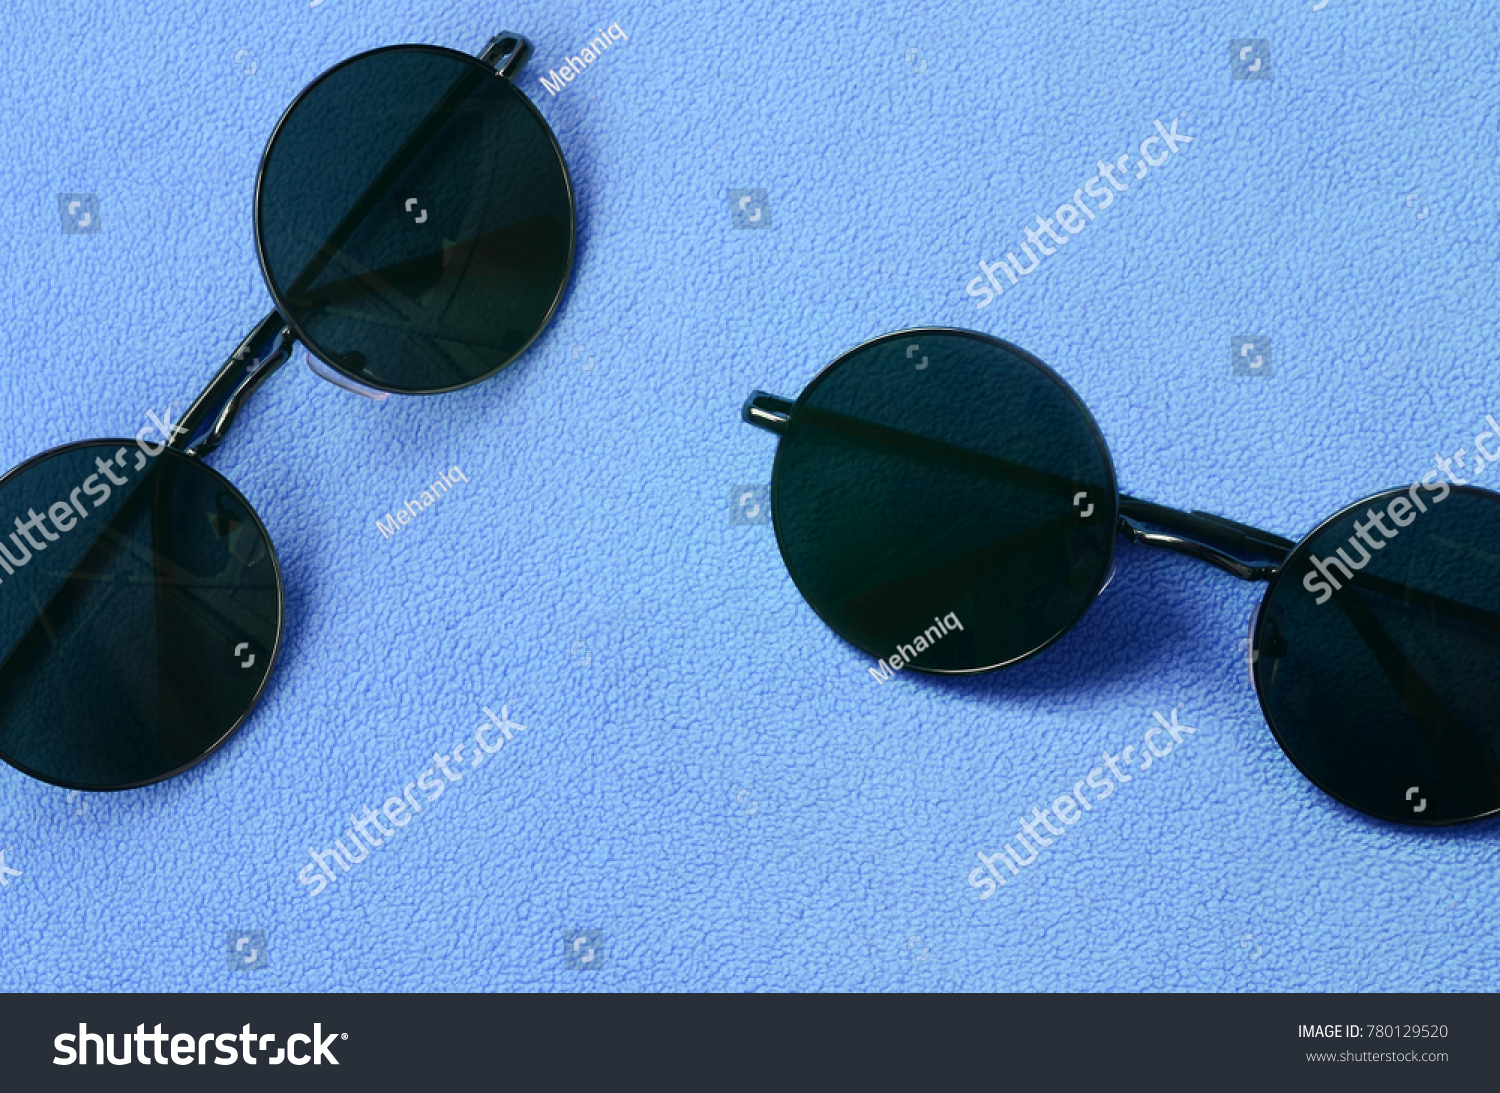 5fe11ad05d28 Two stylish black sunglasses with round glasses lies on a blanket made of  soft and fluffy